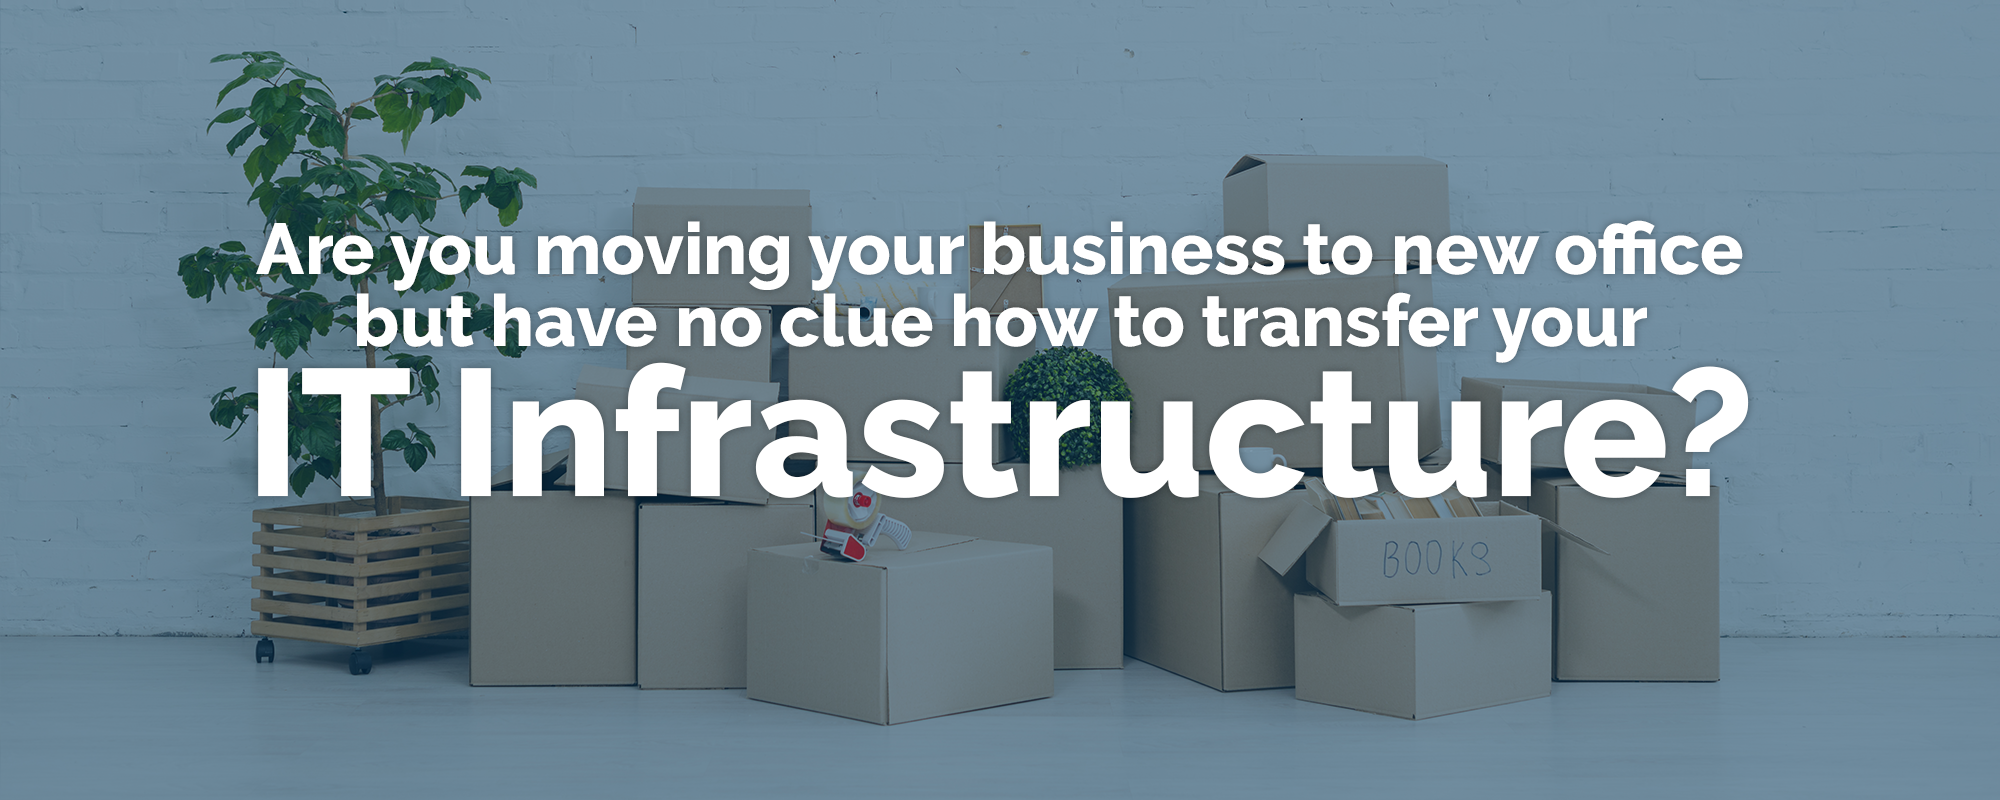 Are you moving your business to new office but have no clue how to transfer your IT Infrastructure ?